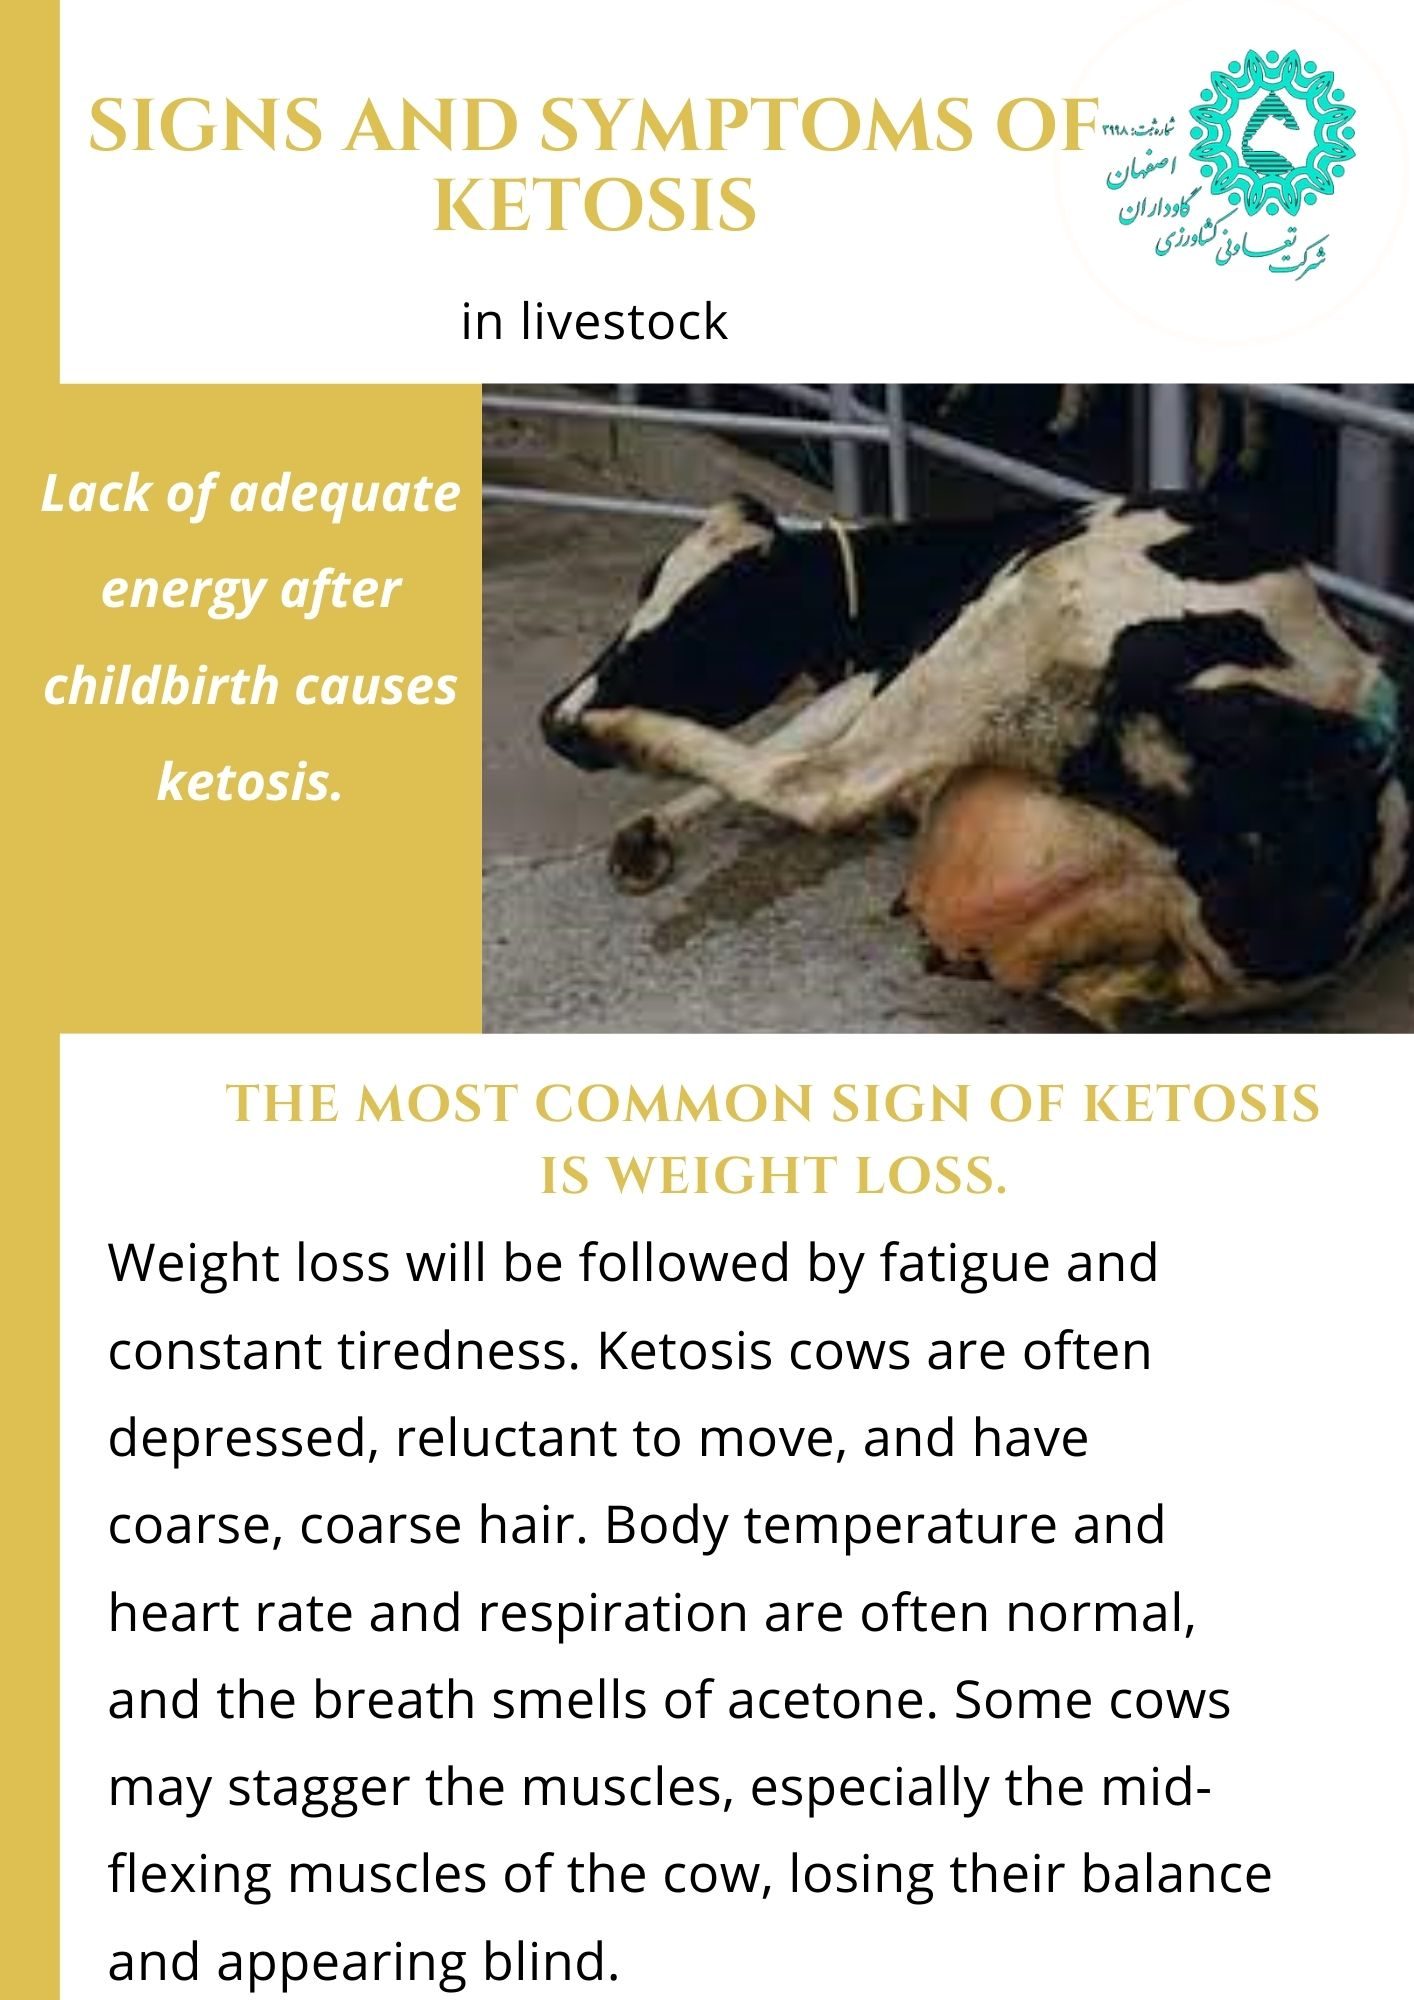 Ketosis due to lack of livestock